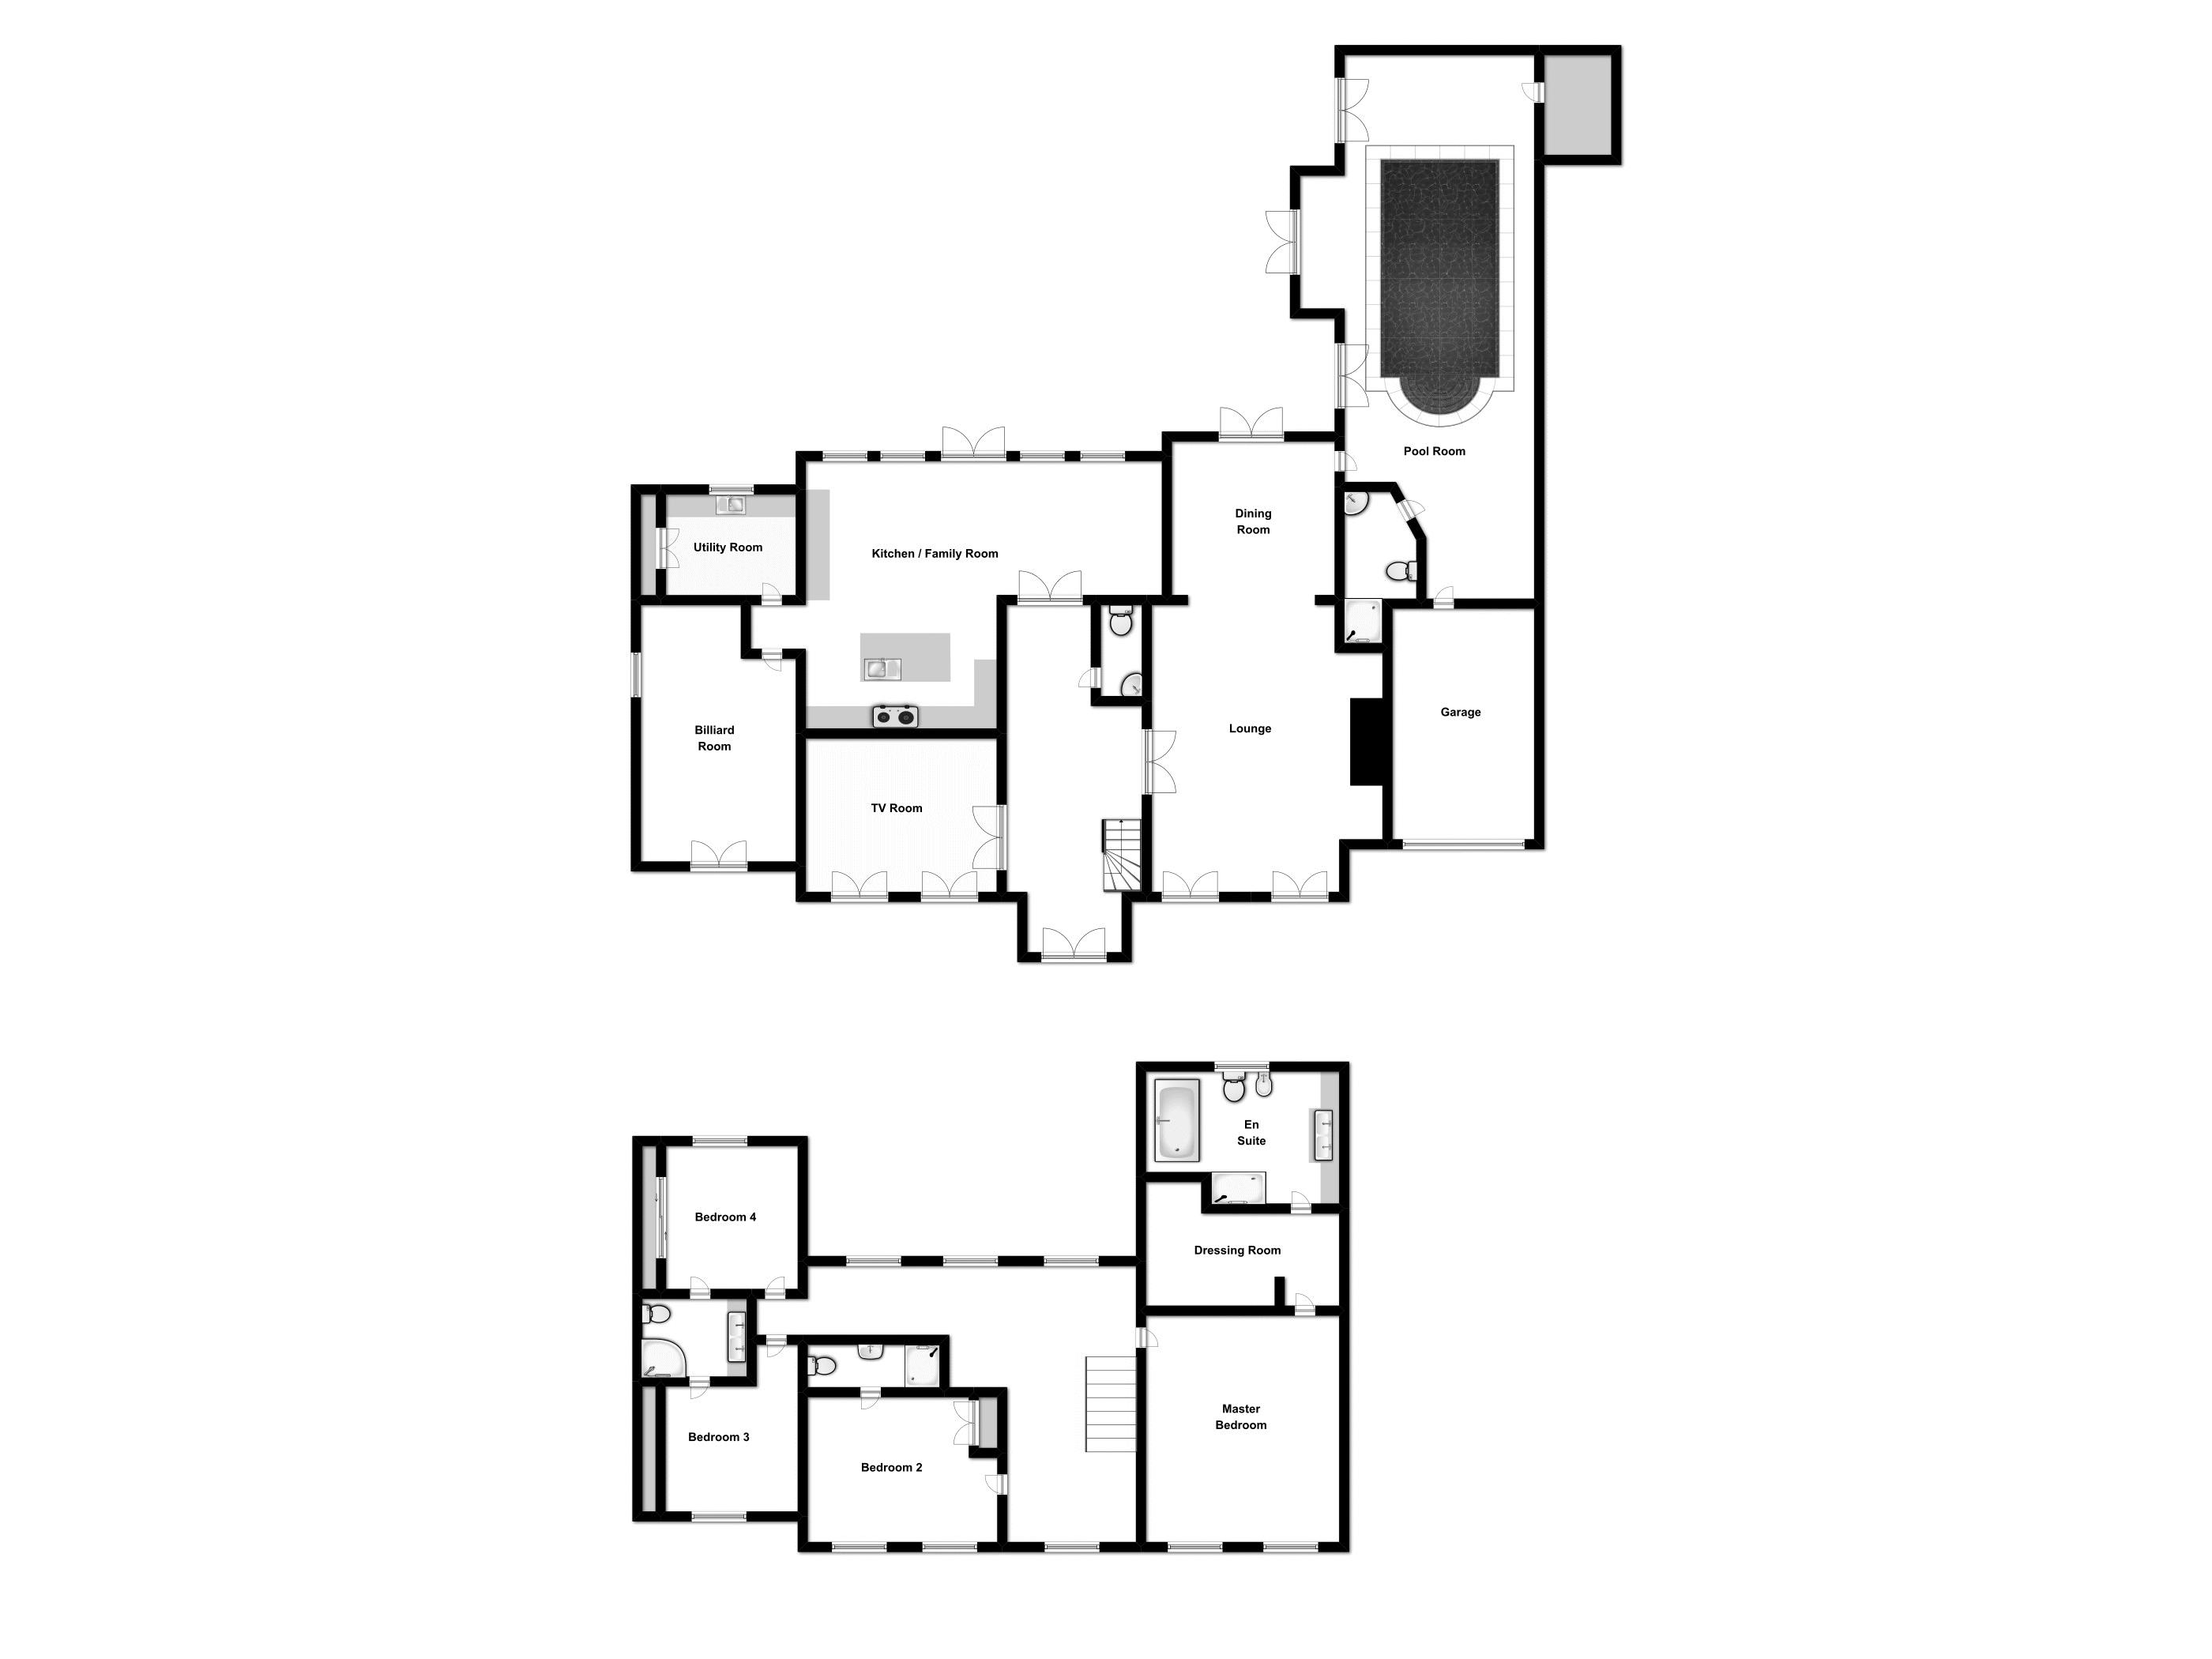 Burntwood Avenue, Emerson Park, Essex RM11 floor plan